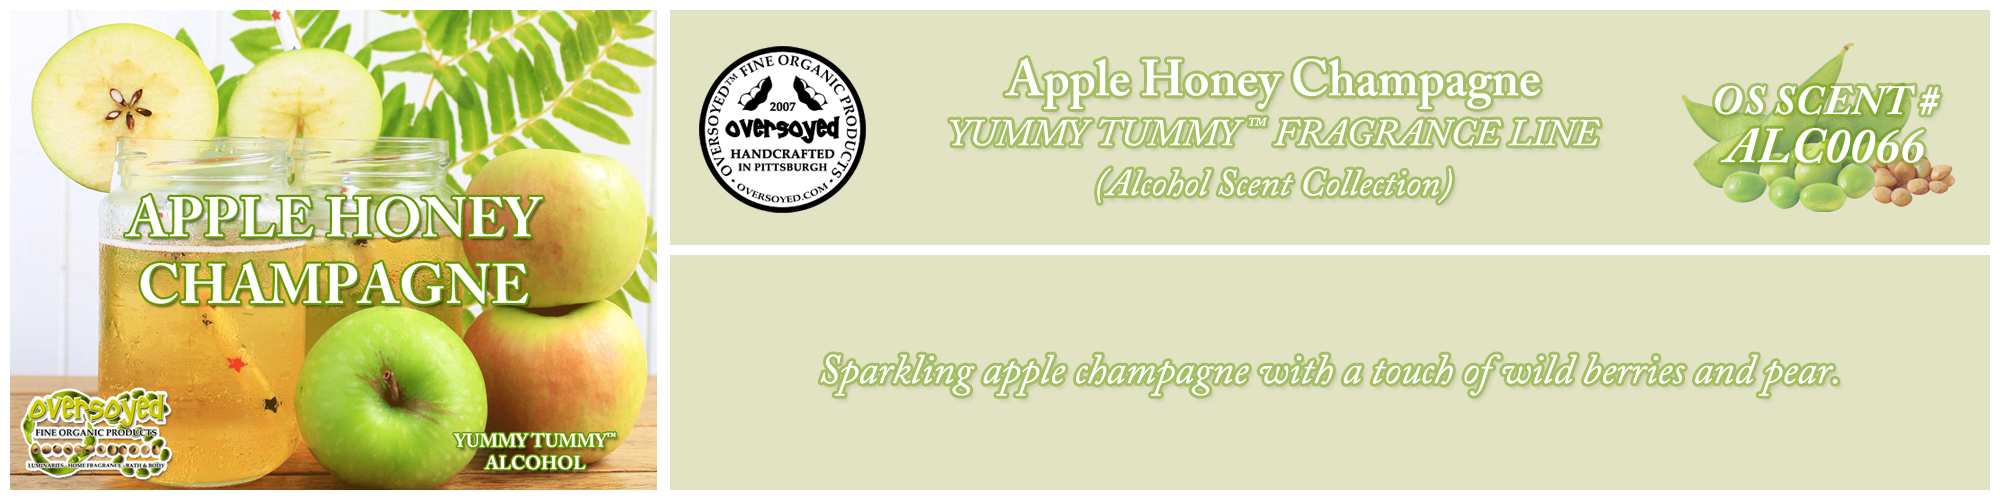 Apple Honey Champagne Handcrafted Products Collection